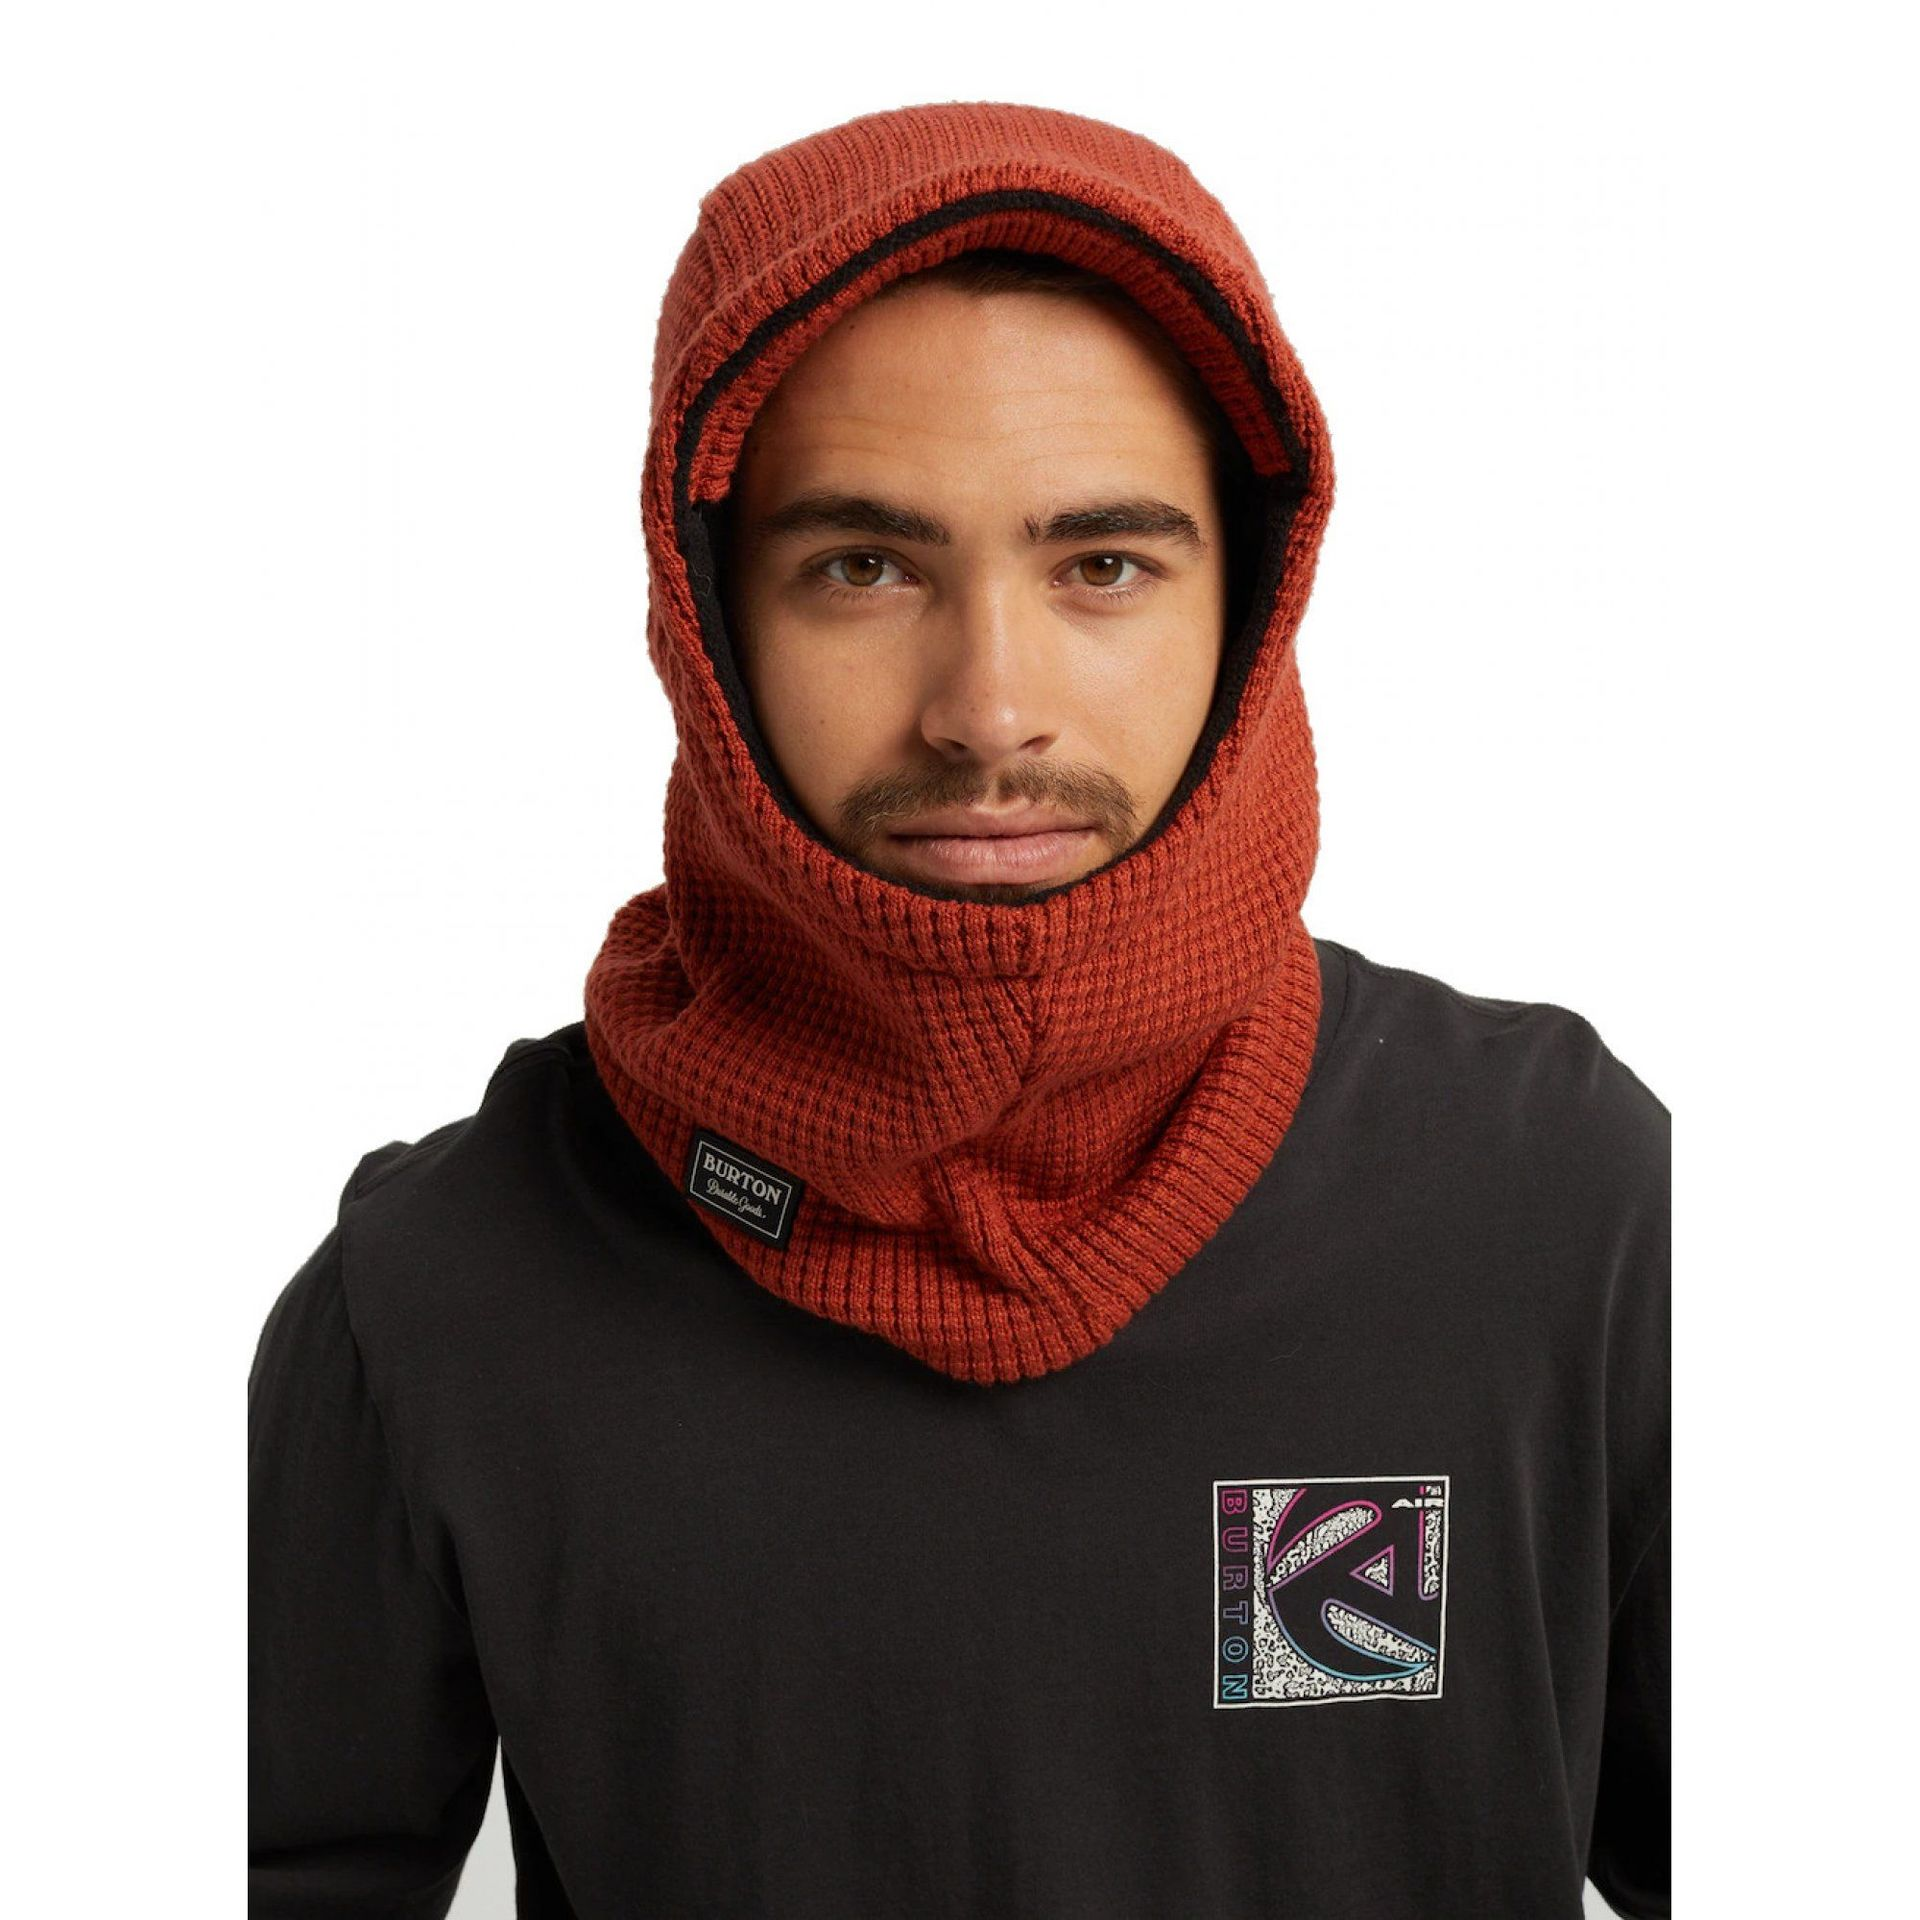 KOMINIARKA BURTON HAMPSHIRE HOOD TRUE BLACK 134241 600 2